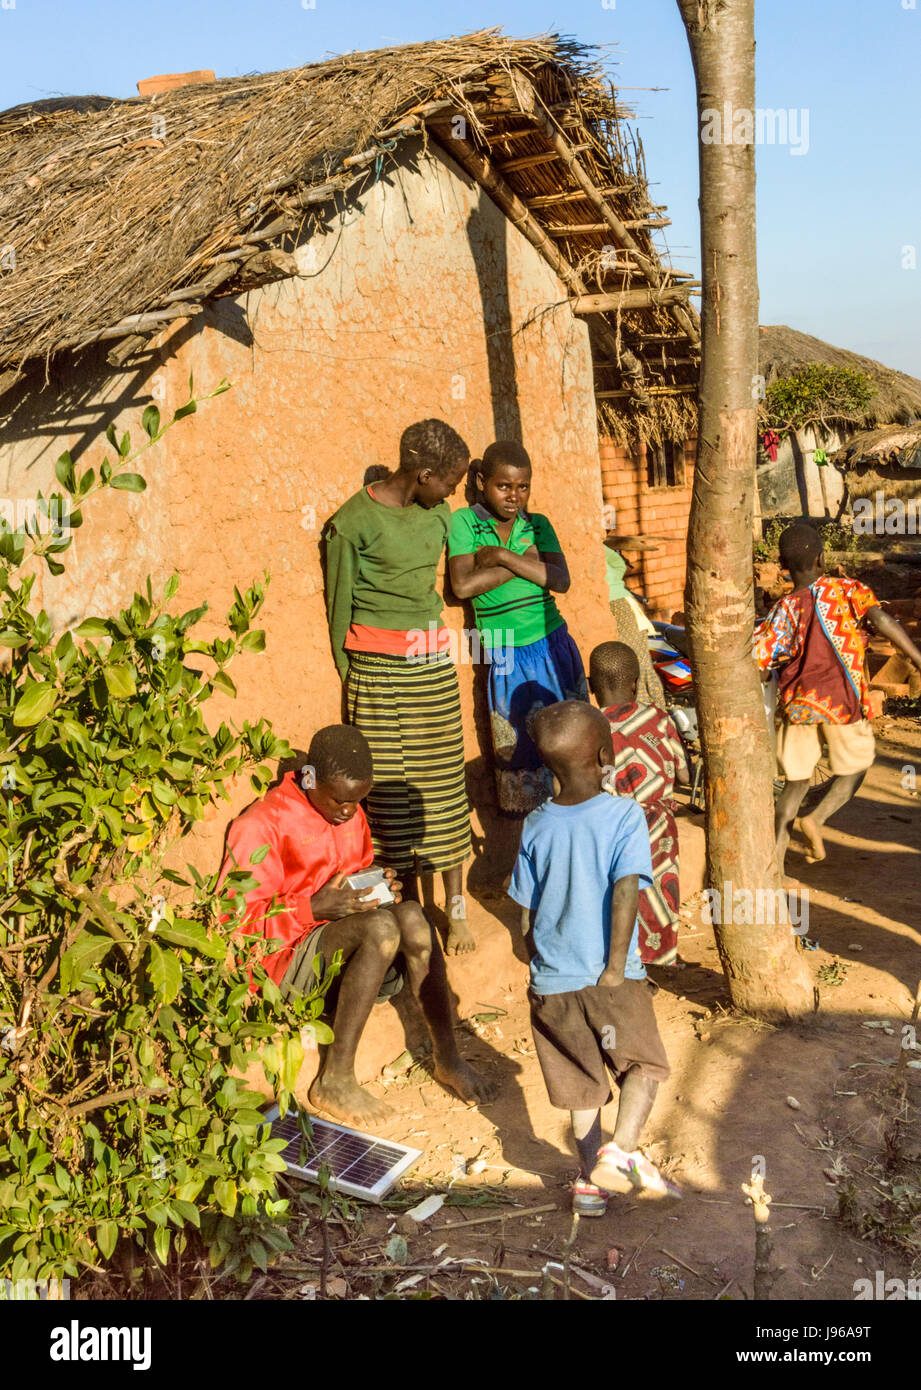 Malawian children stand by traditional grass roofed house in rural village of Kanyama, Malawi, Africa - NB Solar - Stock Image